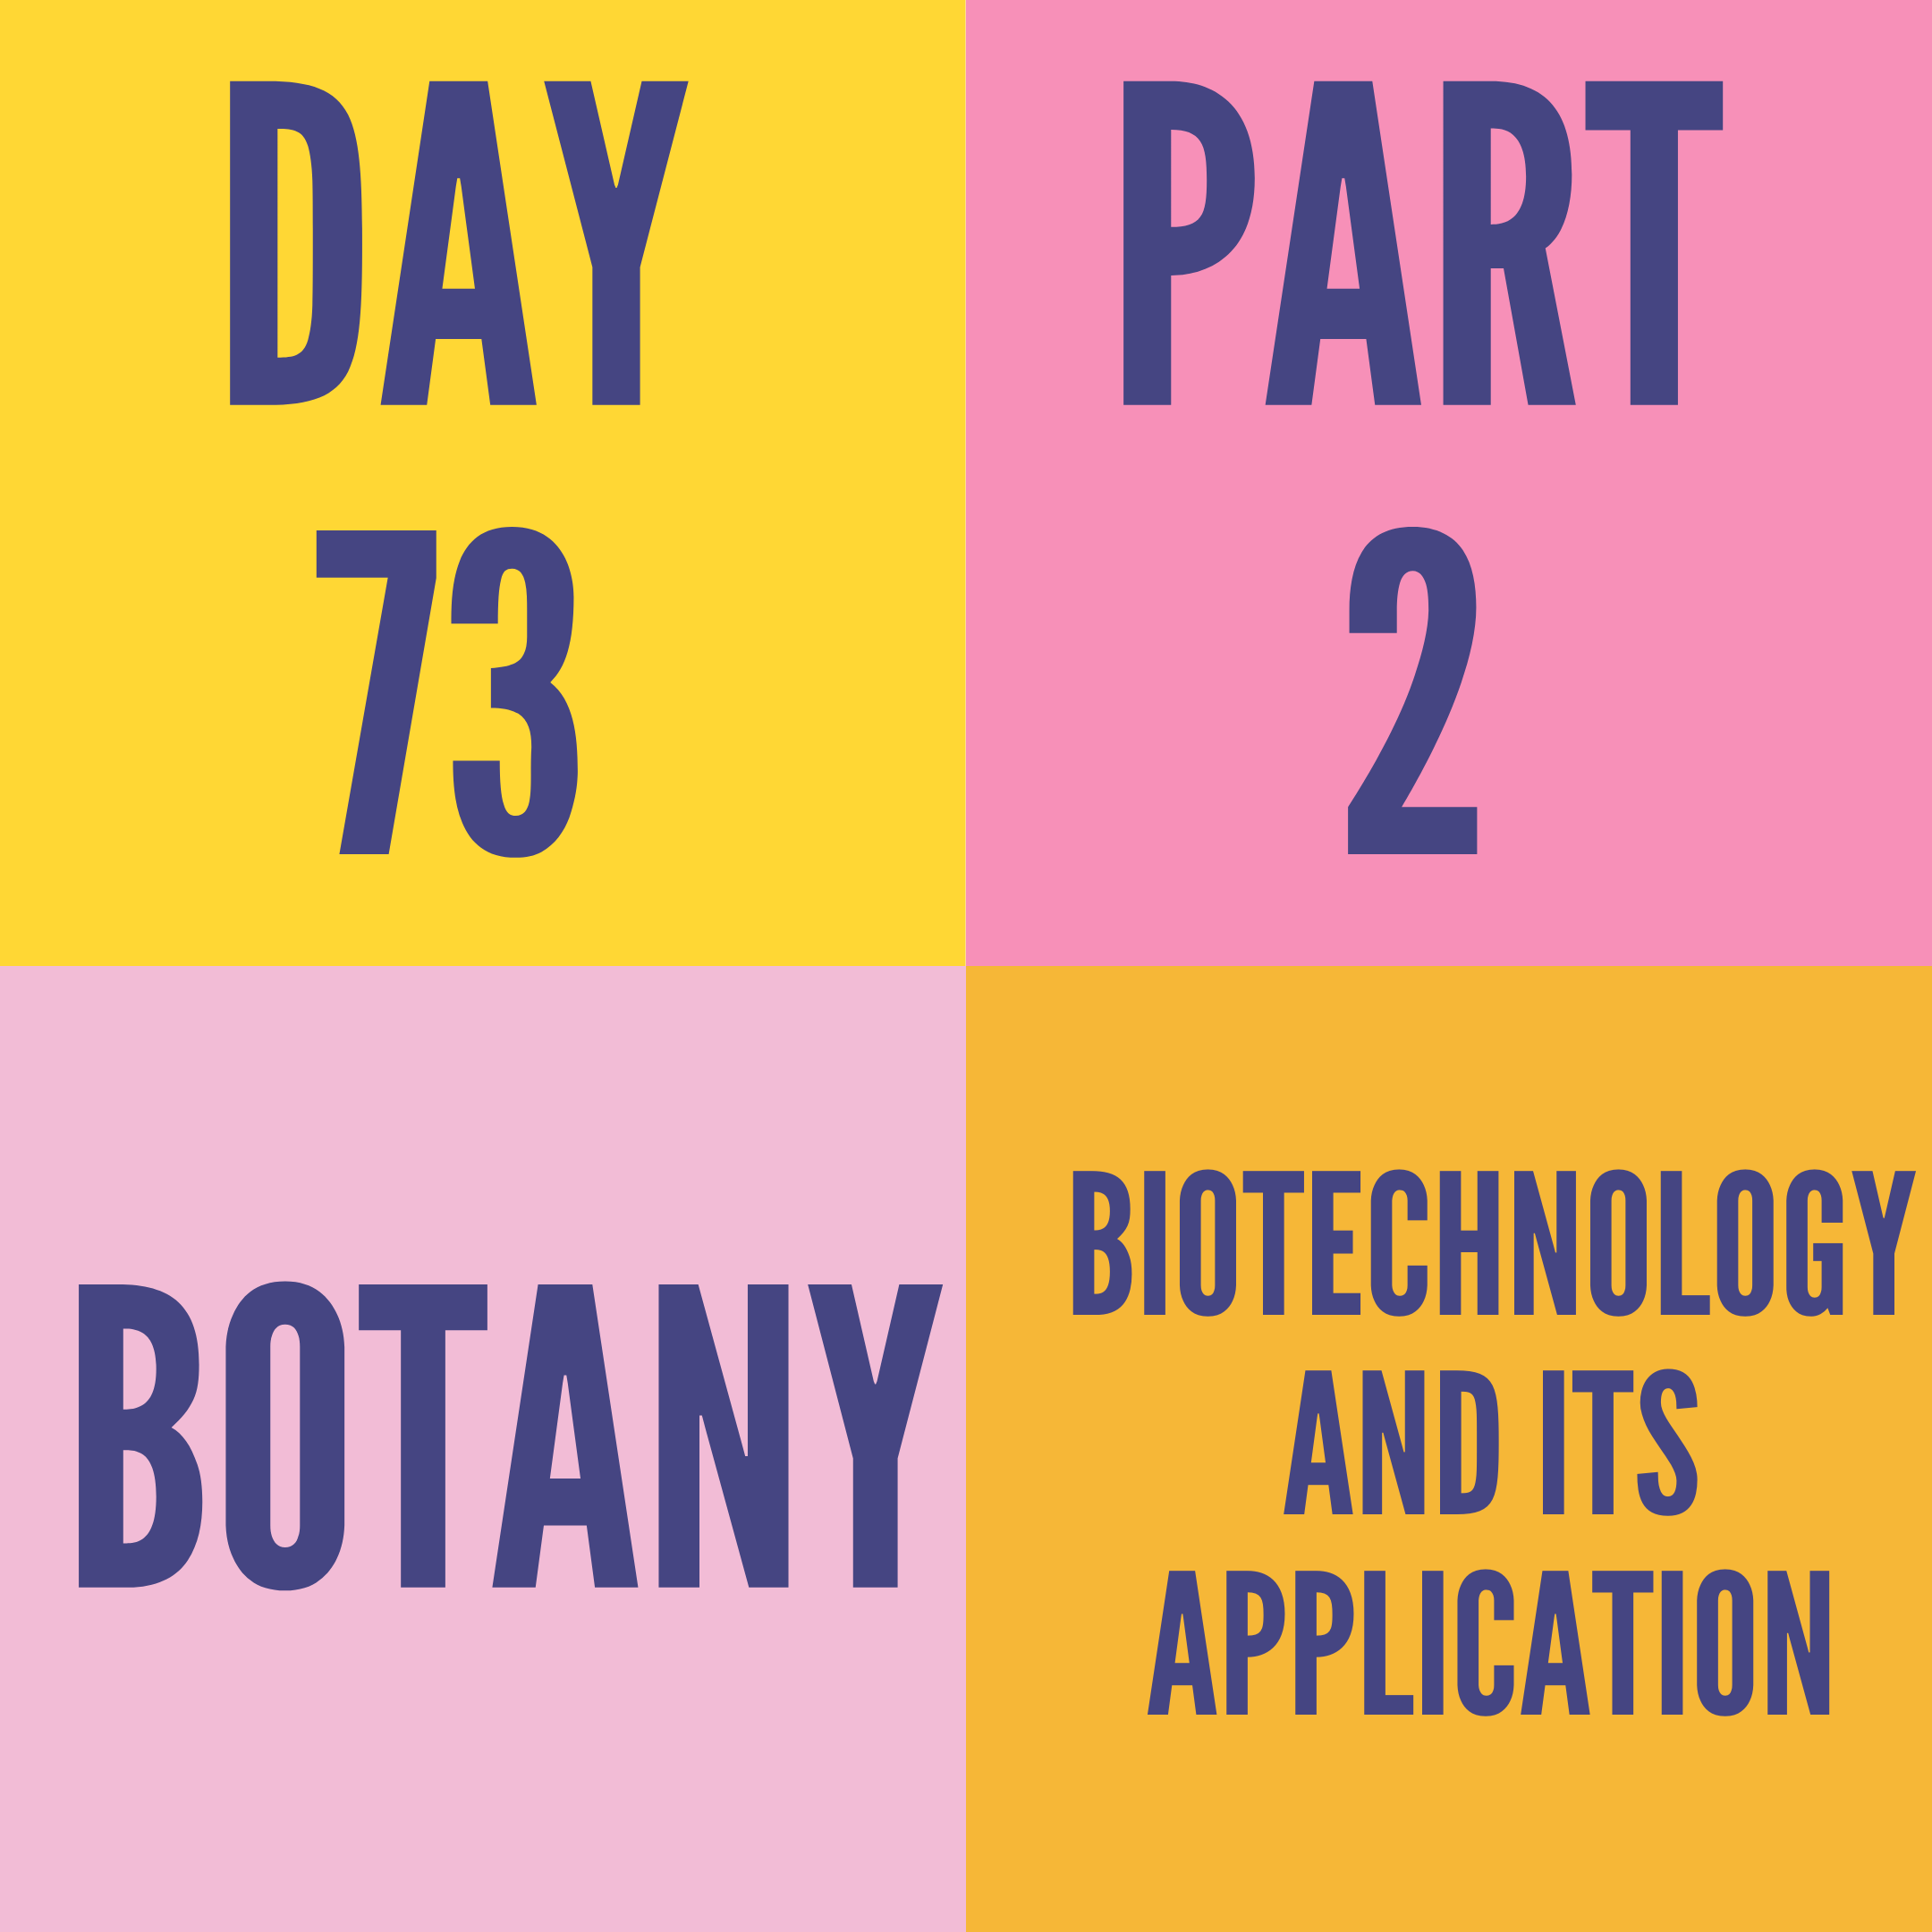 DAY-73 PART-2 BIOTECHNOLOGY AND ITS APPLICATION